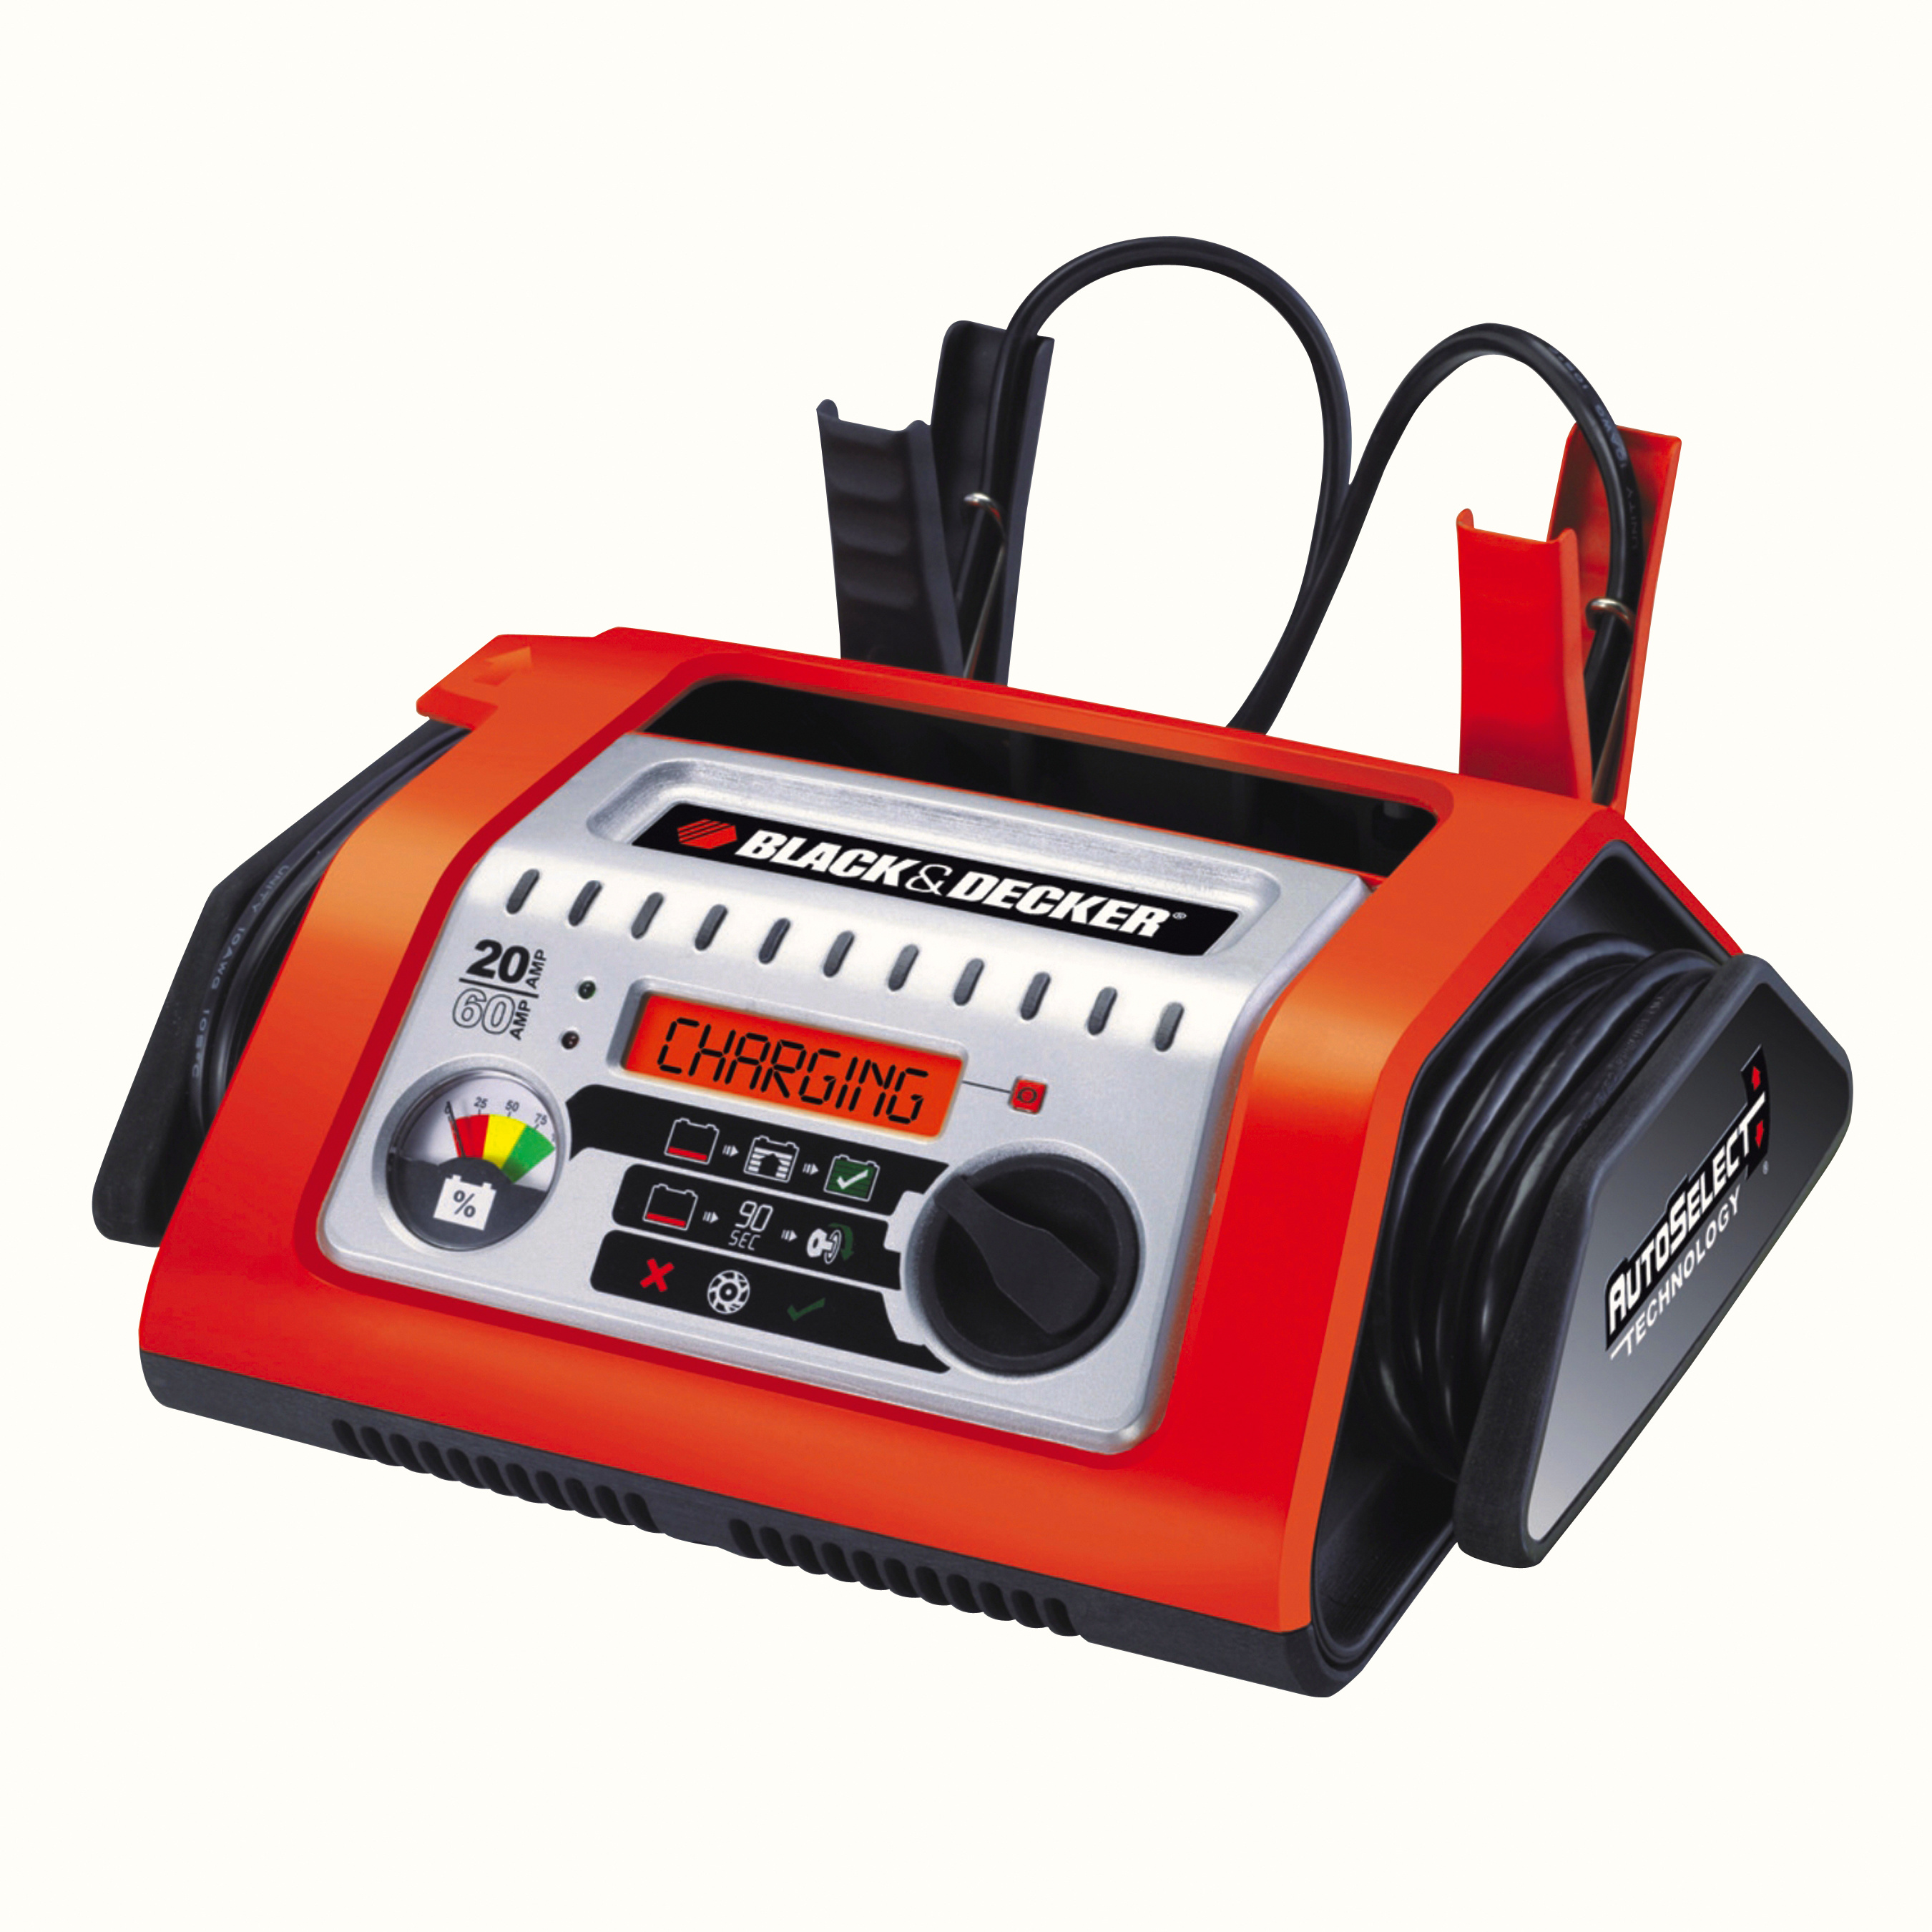 Black&Decker BDSBC20A Acculader 20A